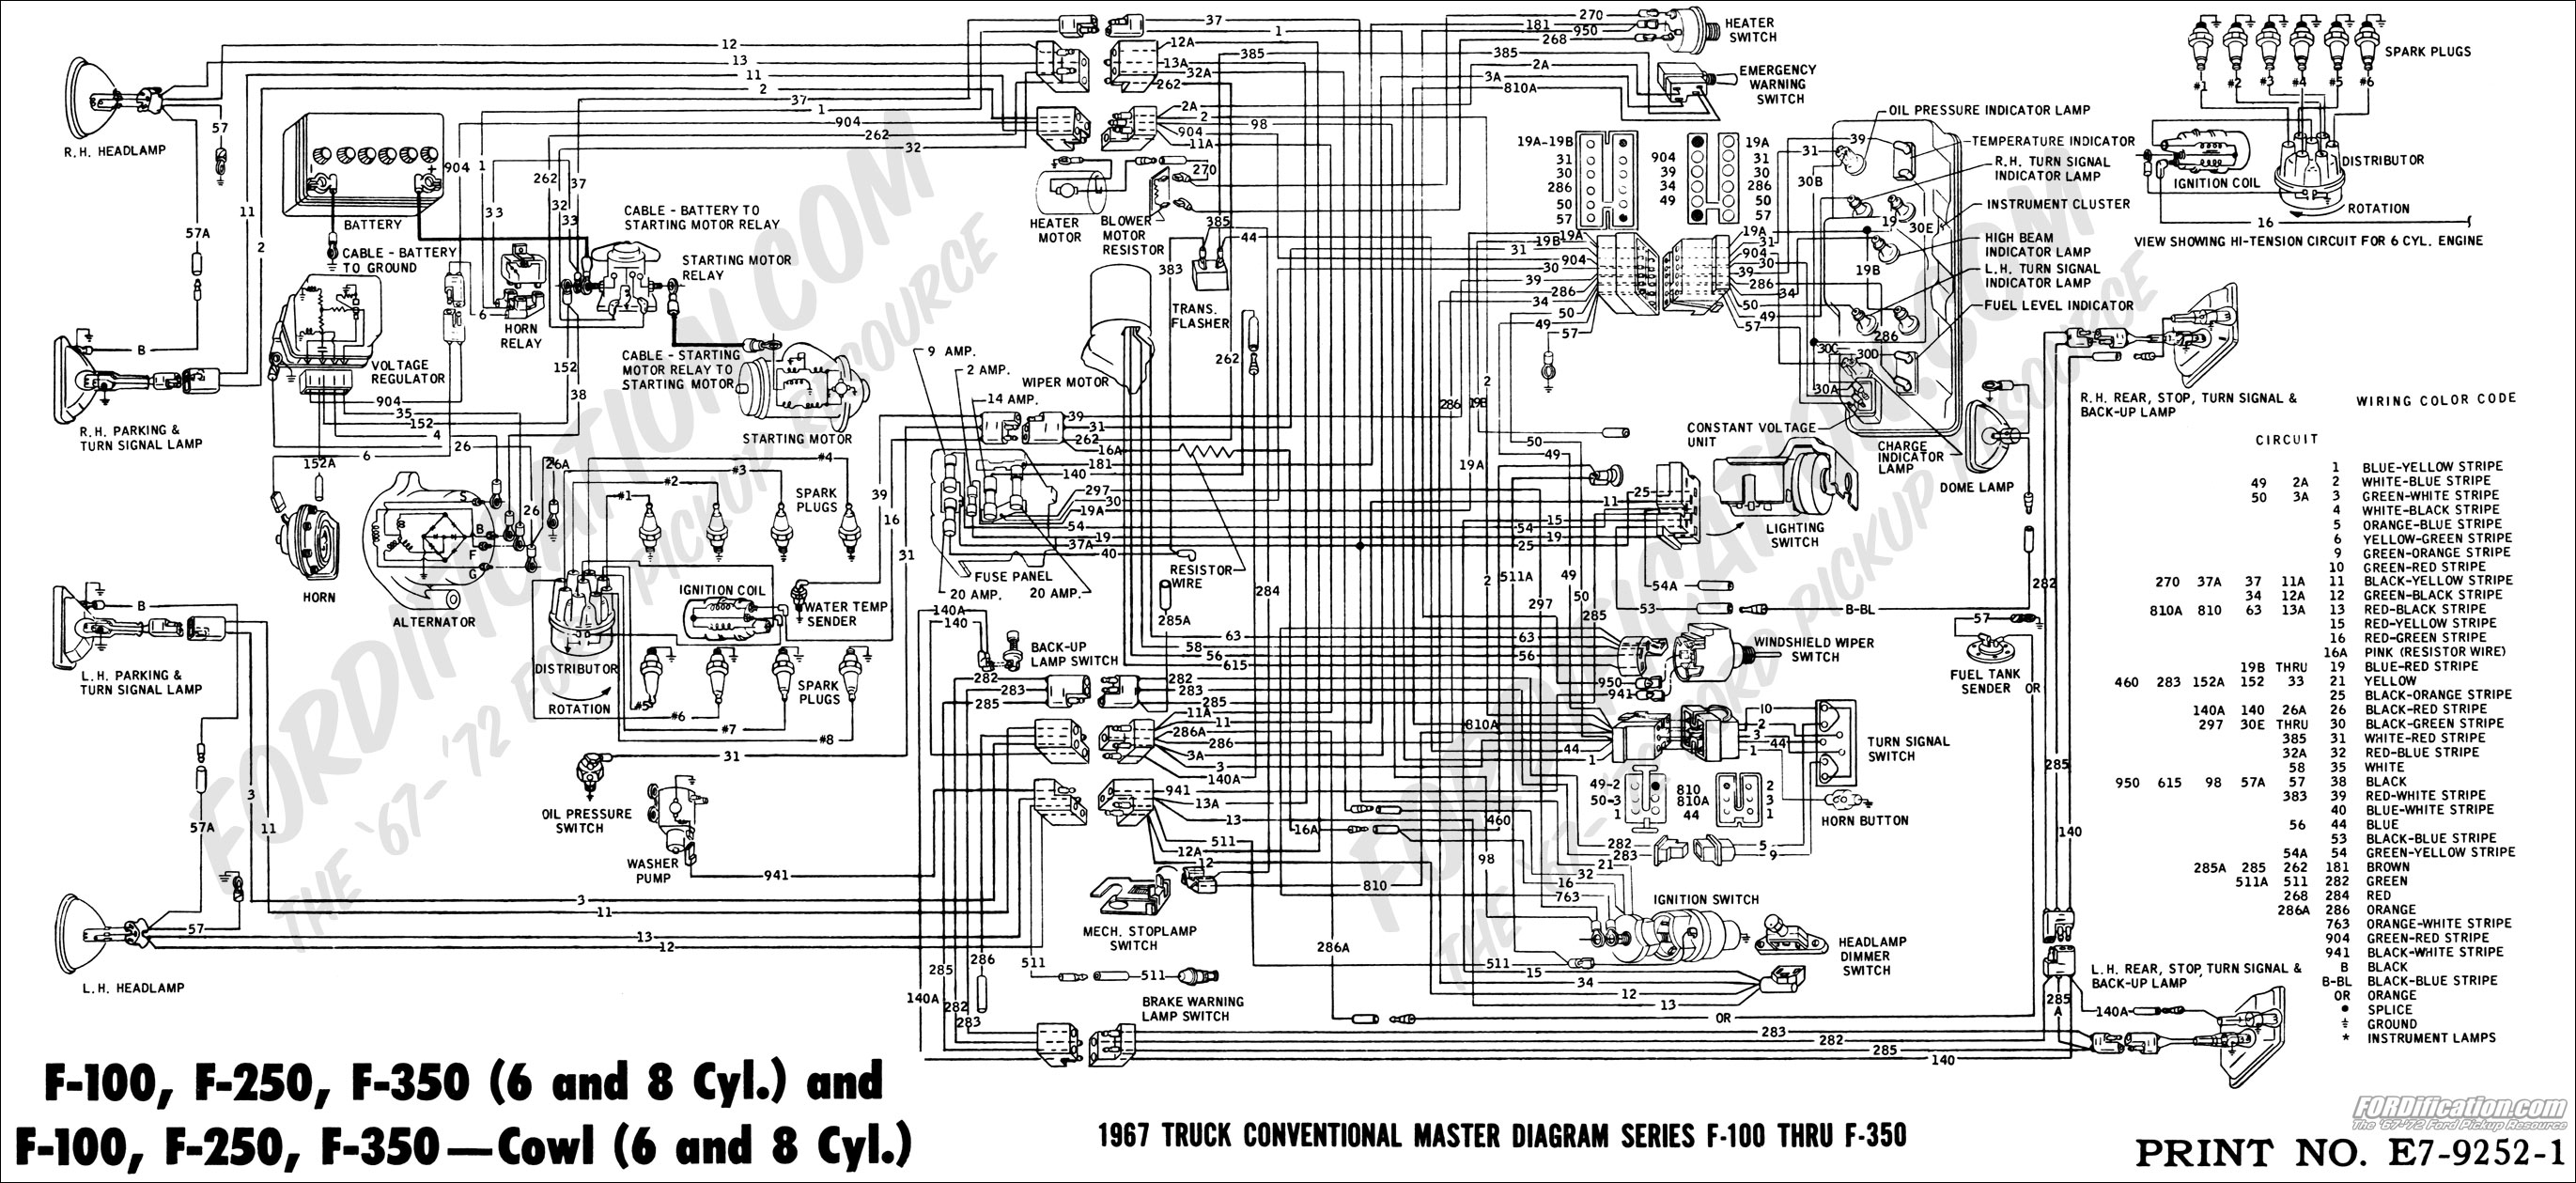 67masterdiagram 1998 ford f150 ignition wiring diagram 1998 wiring diagrams 2001 ford f150 wiring schematic at pacquiaovsvargaslive.co